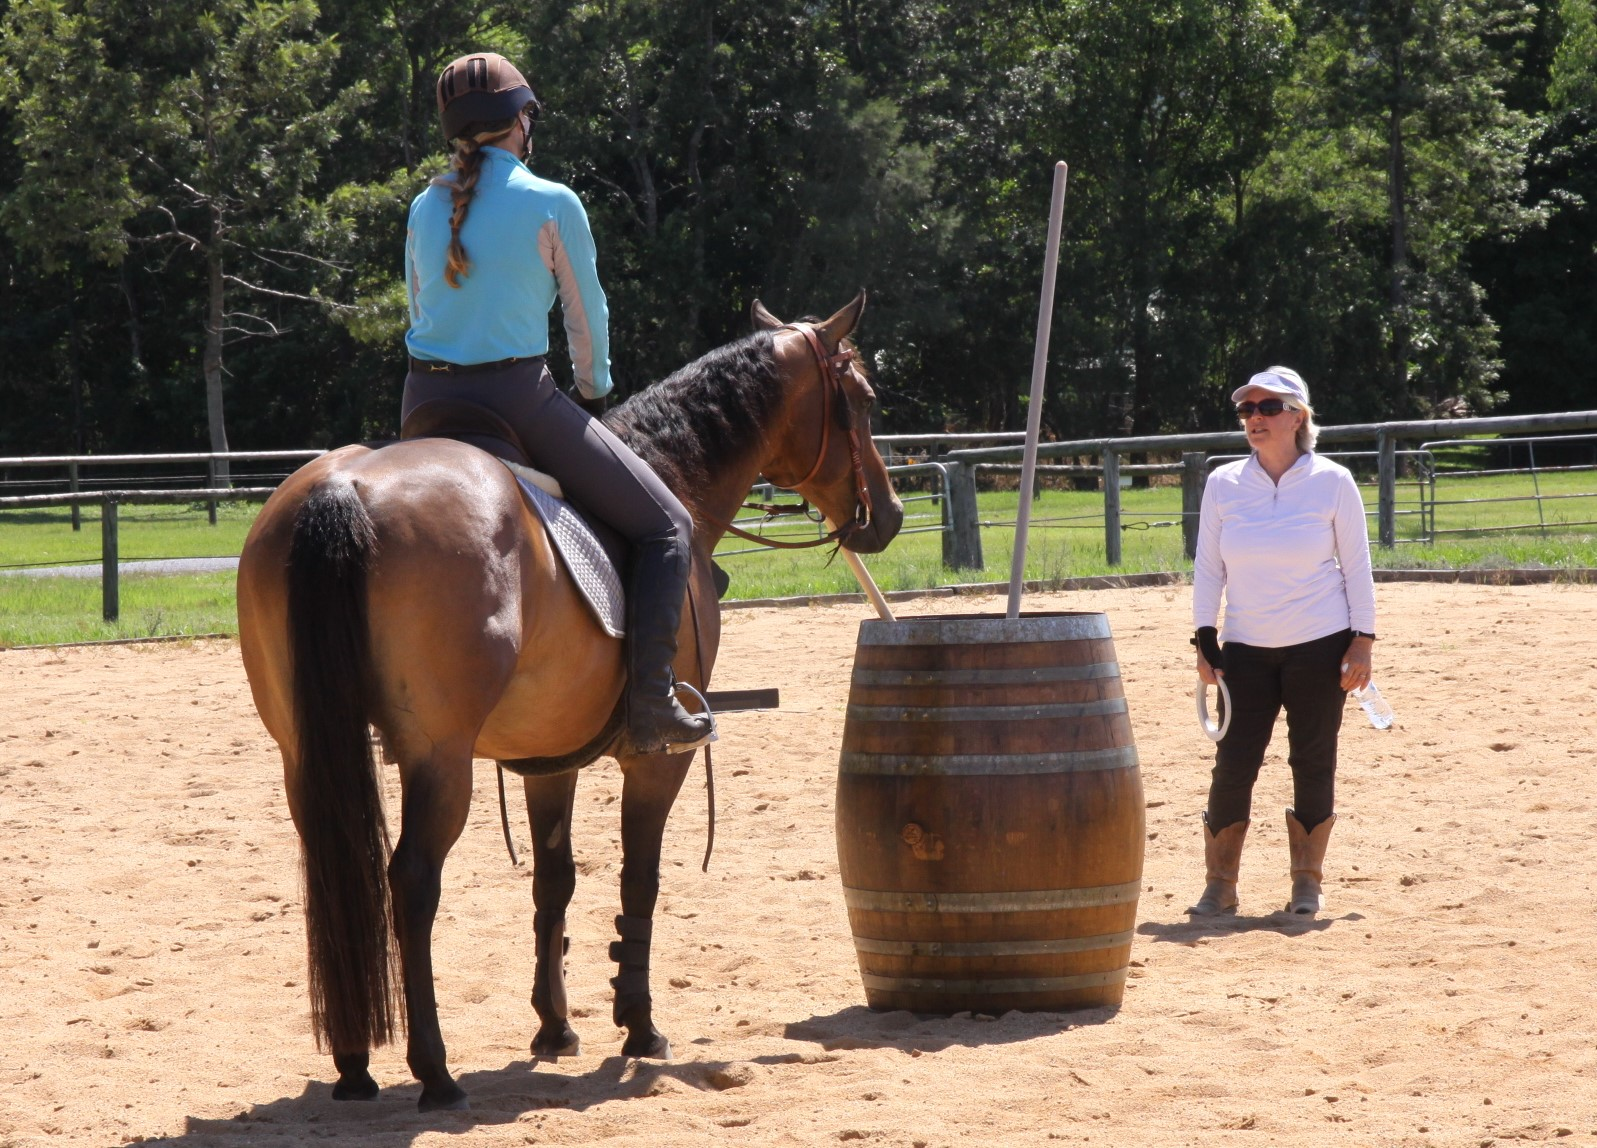 The Four Phases - + Dressage+ Ease of Handling+ Speed+ Cattle